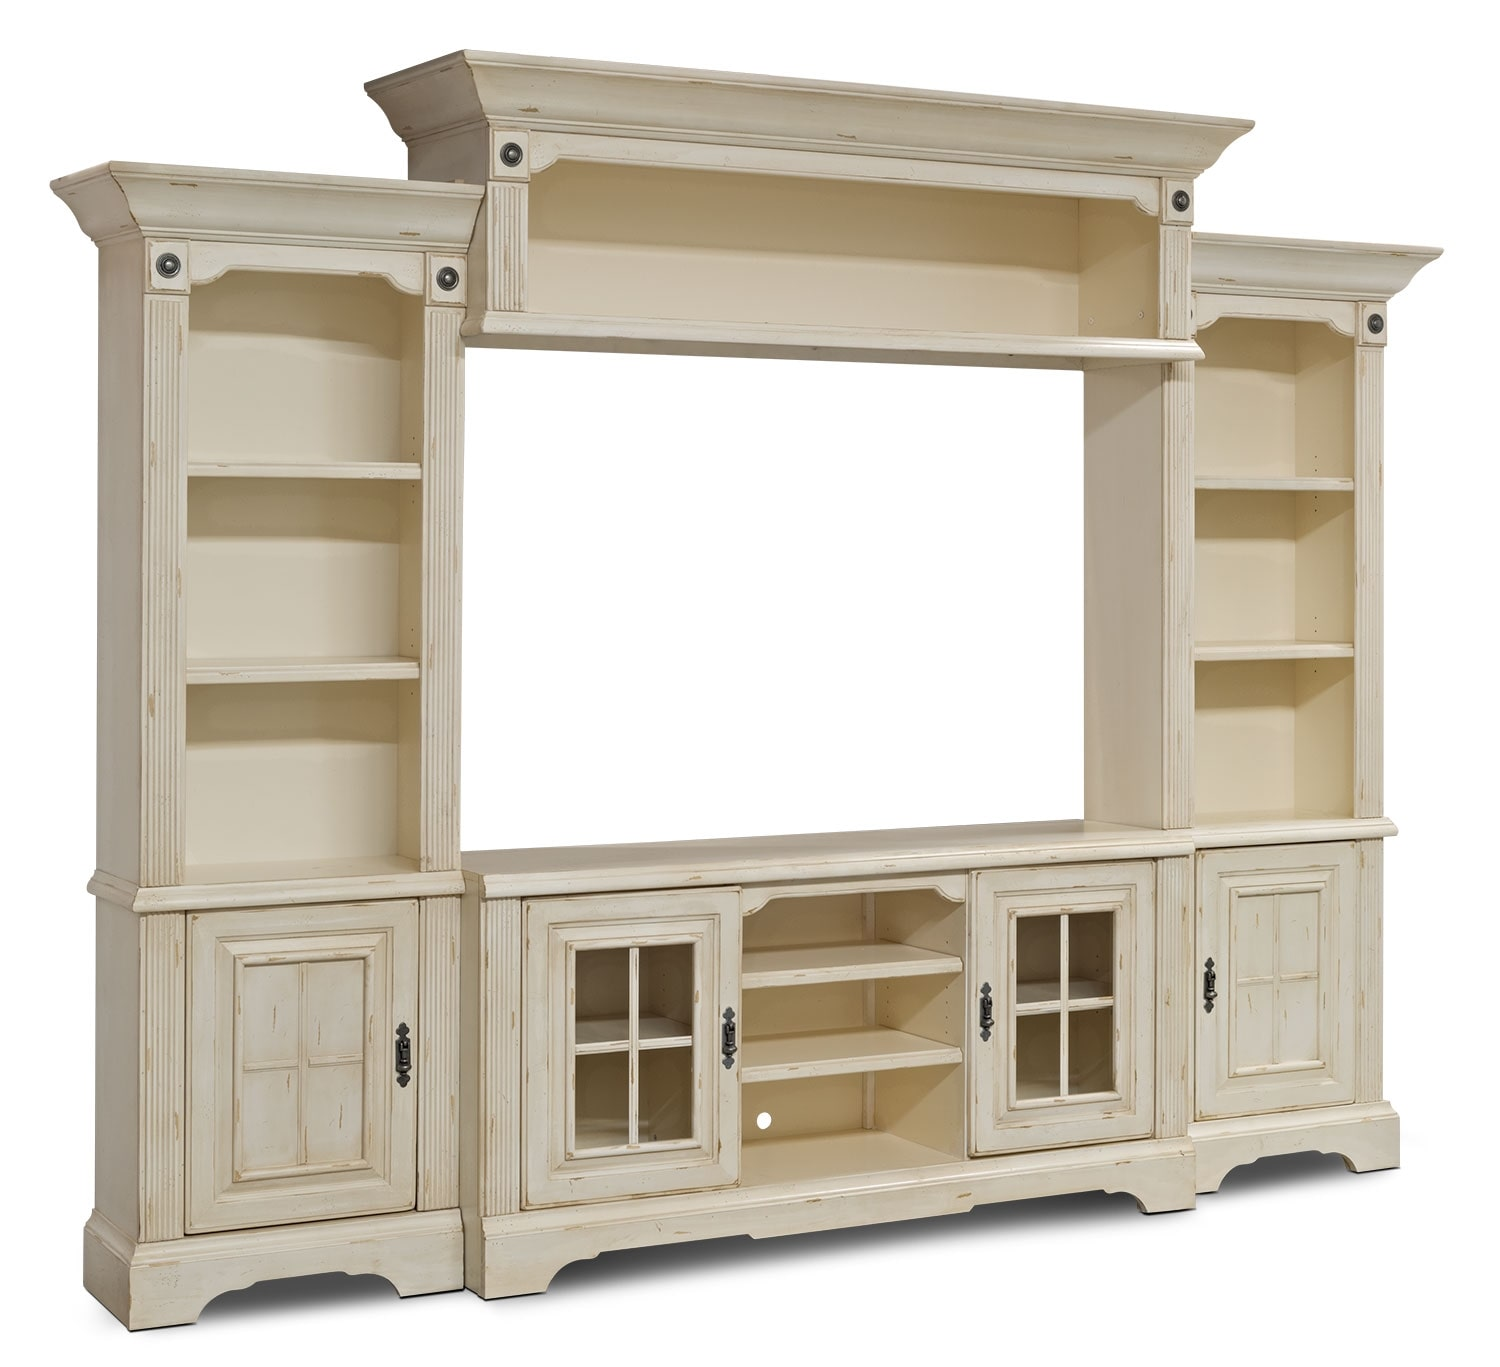 "Highland 4-Piece Entertainment Centre with 66"" TV Opening"